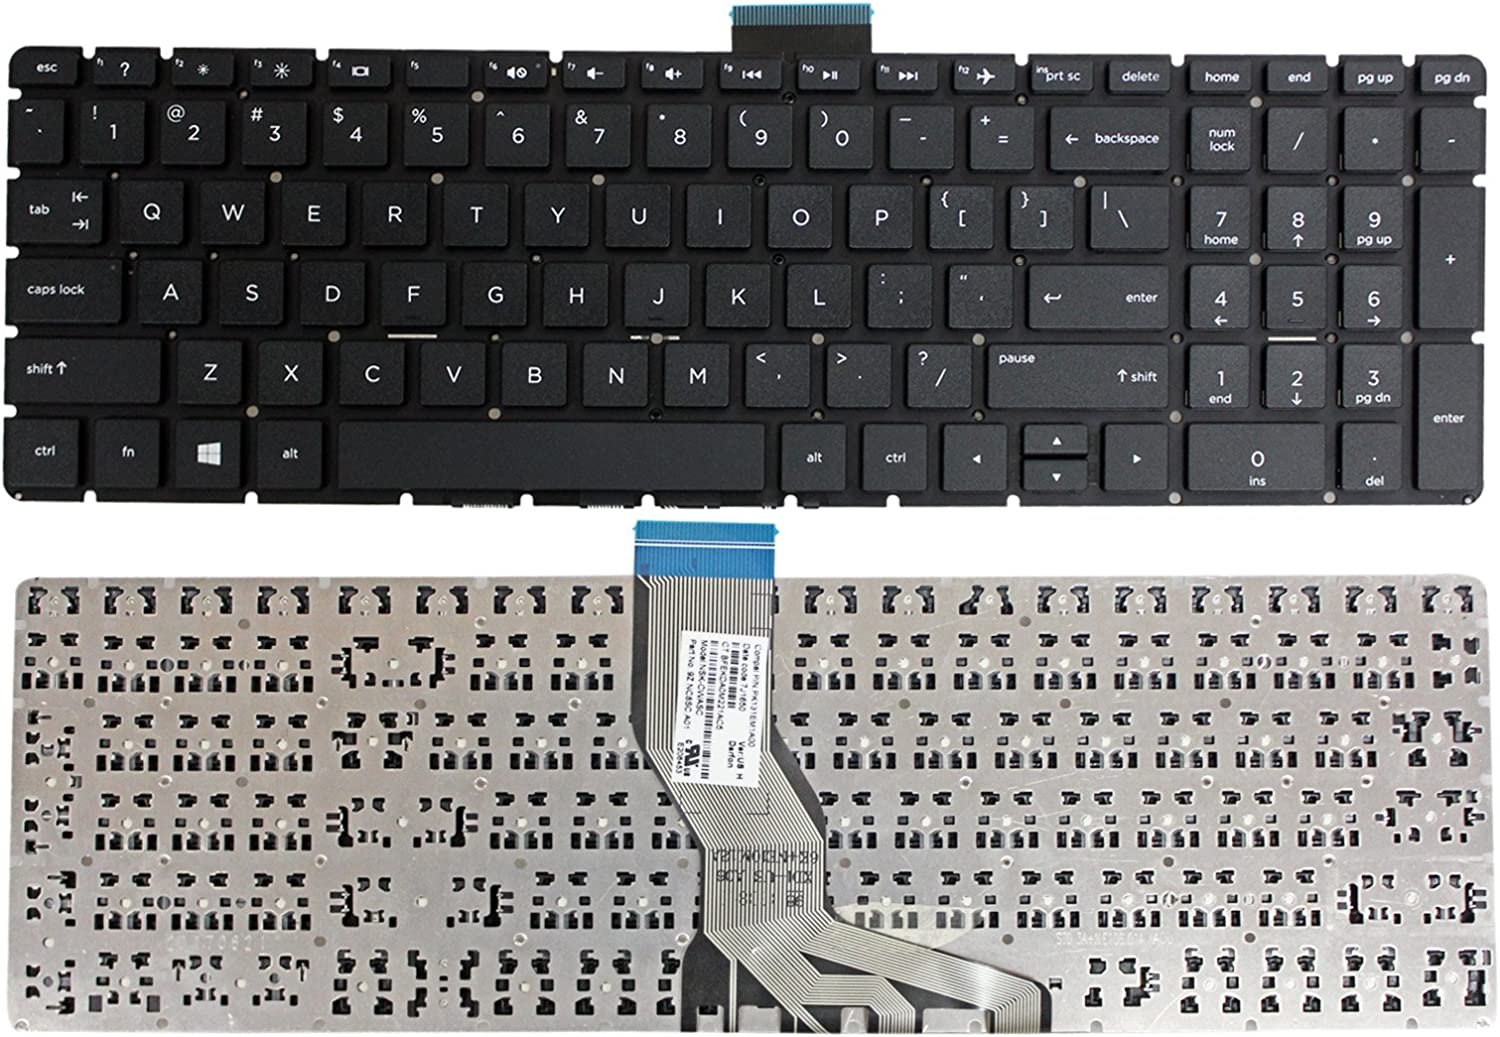 GinTai Laptop US Keyboard Black Replacement for HP 15-bs071nr 15-bs075nr 15-bs077nr 15-bs015dx 15-bs078cl 15-bs078nr 15-bs085nr 15-bs051od 15-bs010nr 15-bs012ca 15-bs000 15-bs100 15-bs500 15-bs600